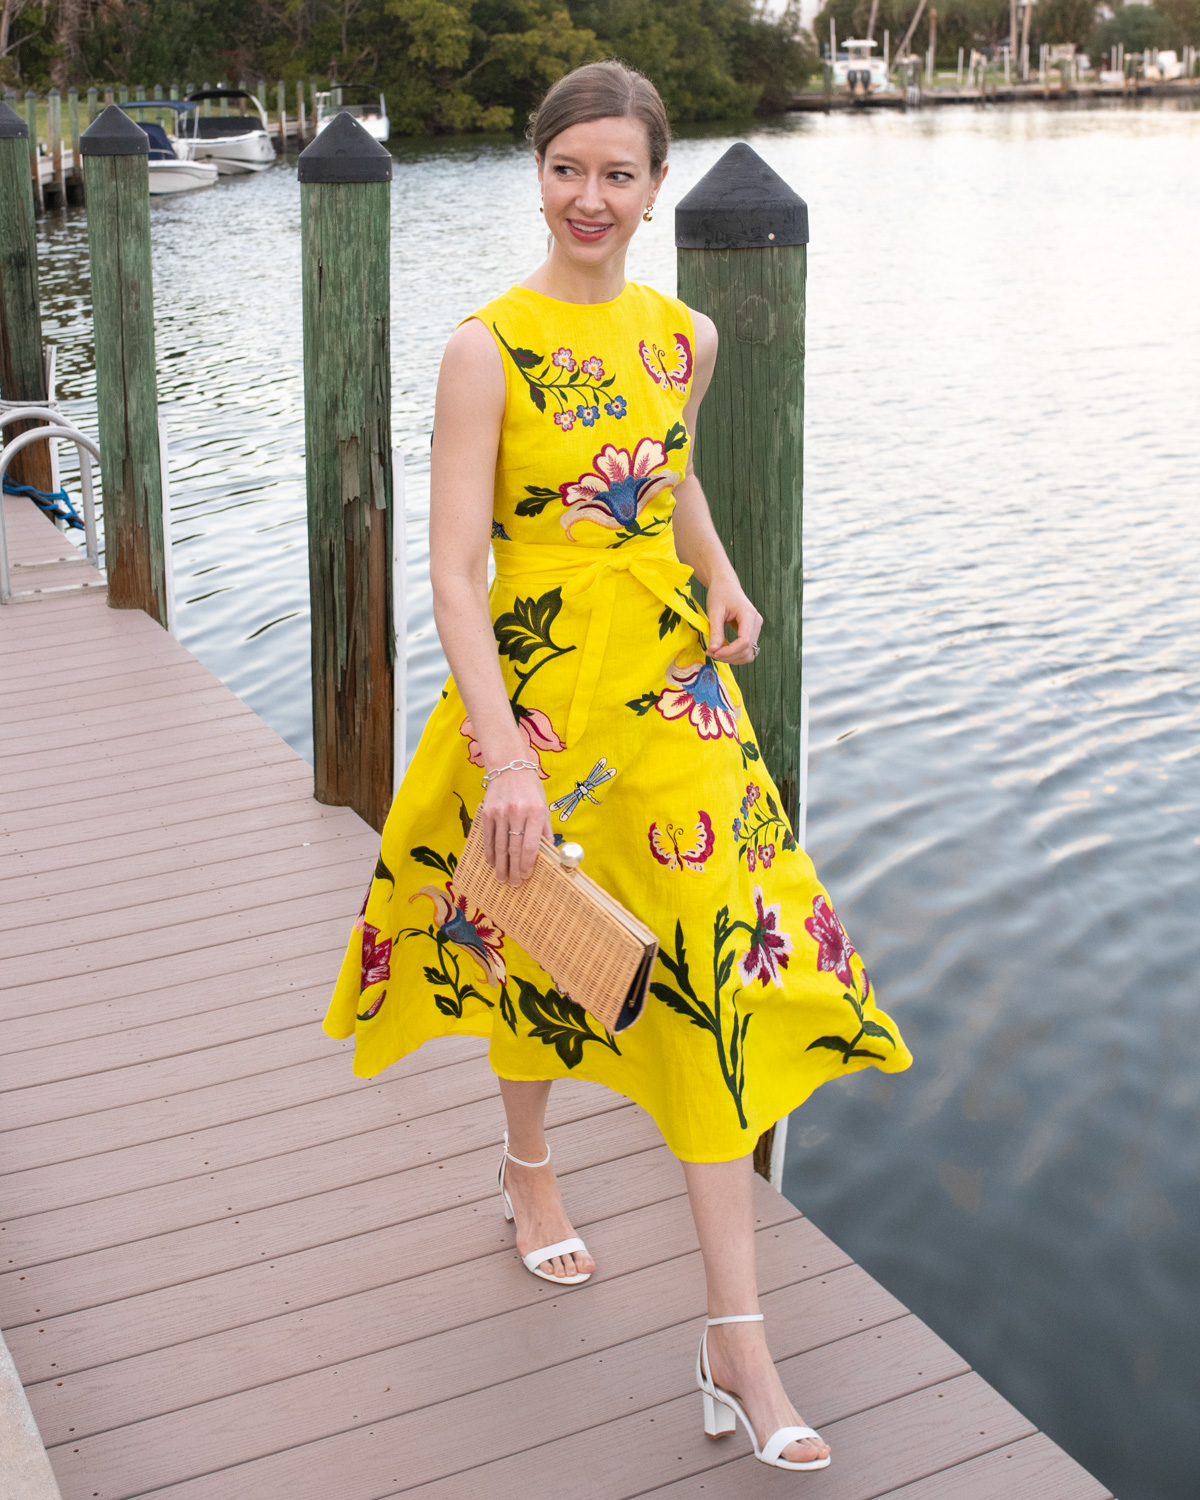 Stacie Flinner Fanm Mon Yellow Embroidered Dress